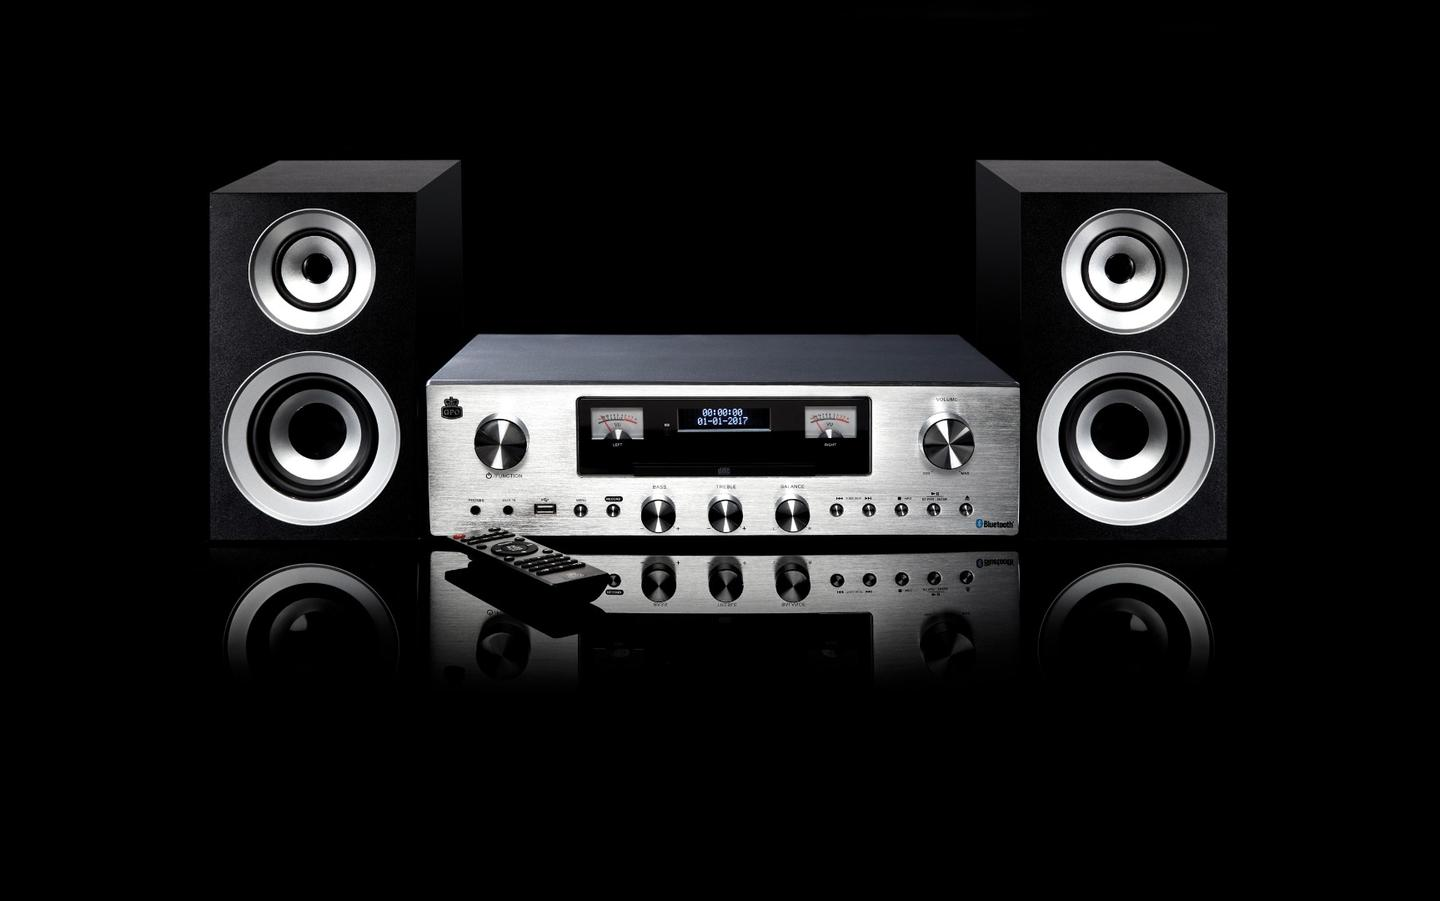 The amp/music player combo PR200 (and included speakers)from retro audio gear maker GPO